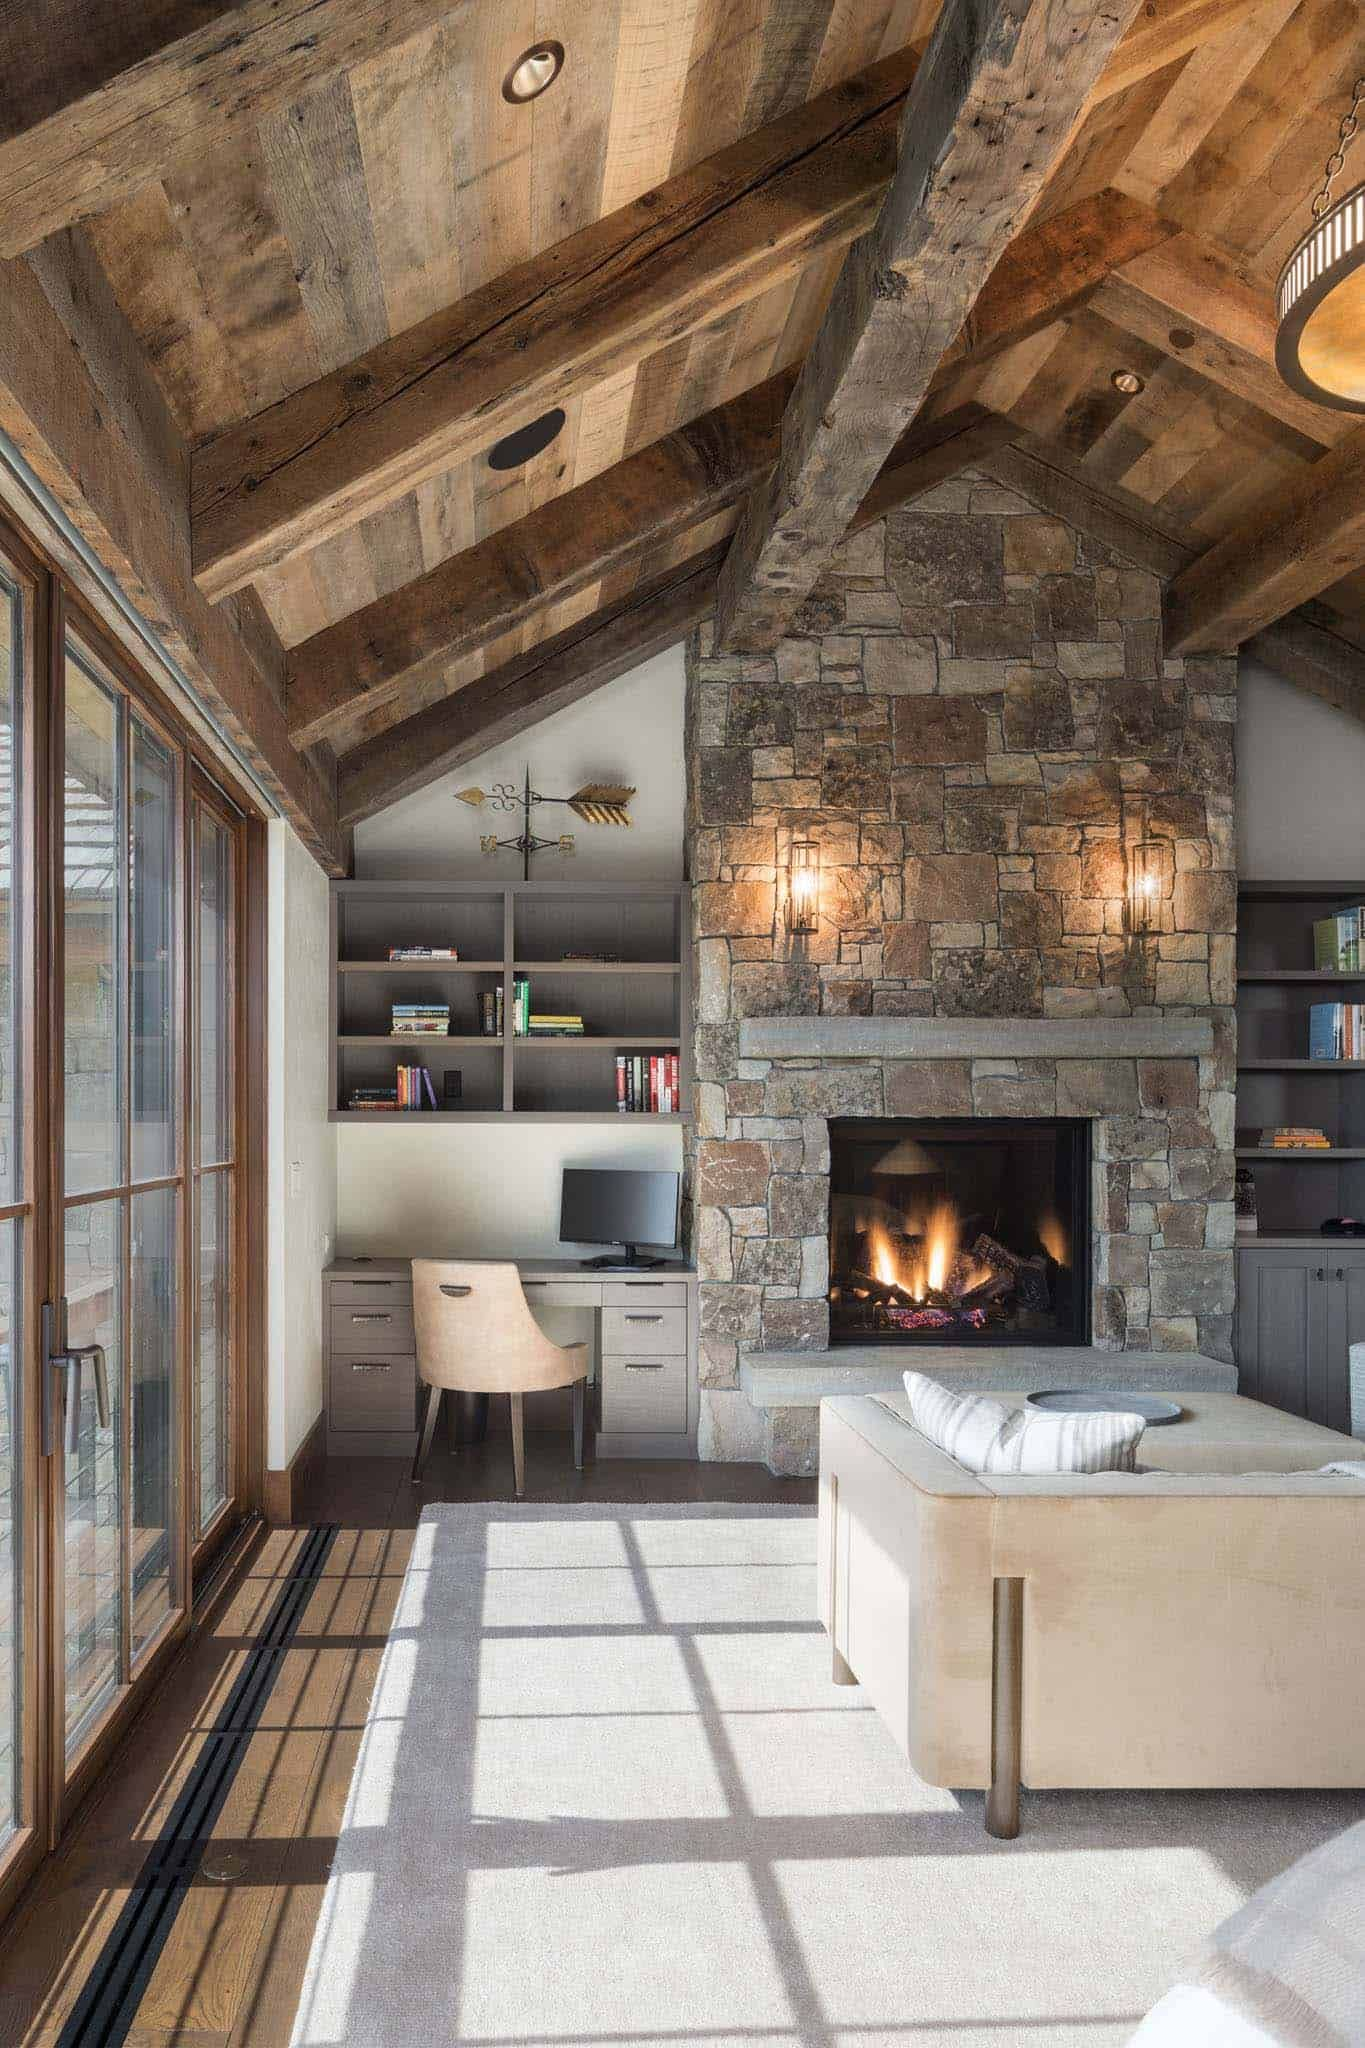 Delightful Rustic Home In Wyoming With A Dramatic Mountain Backdrop Rustic Living Room Design Rustic Home Design Modern Rustic Living Room